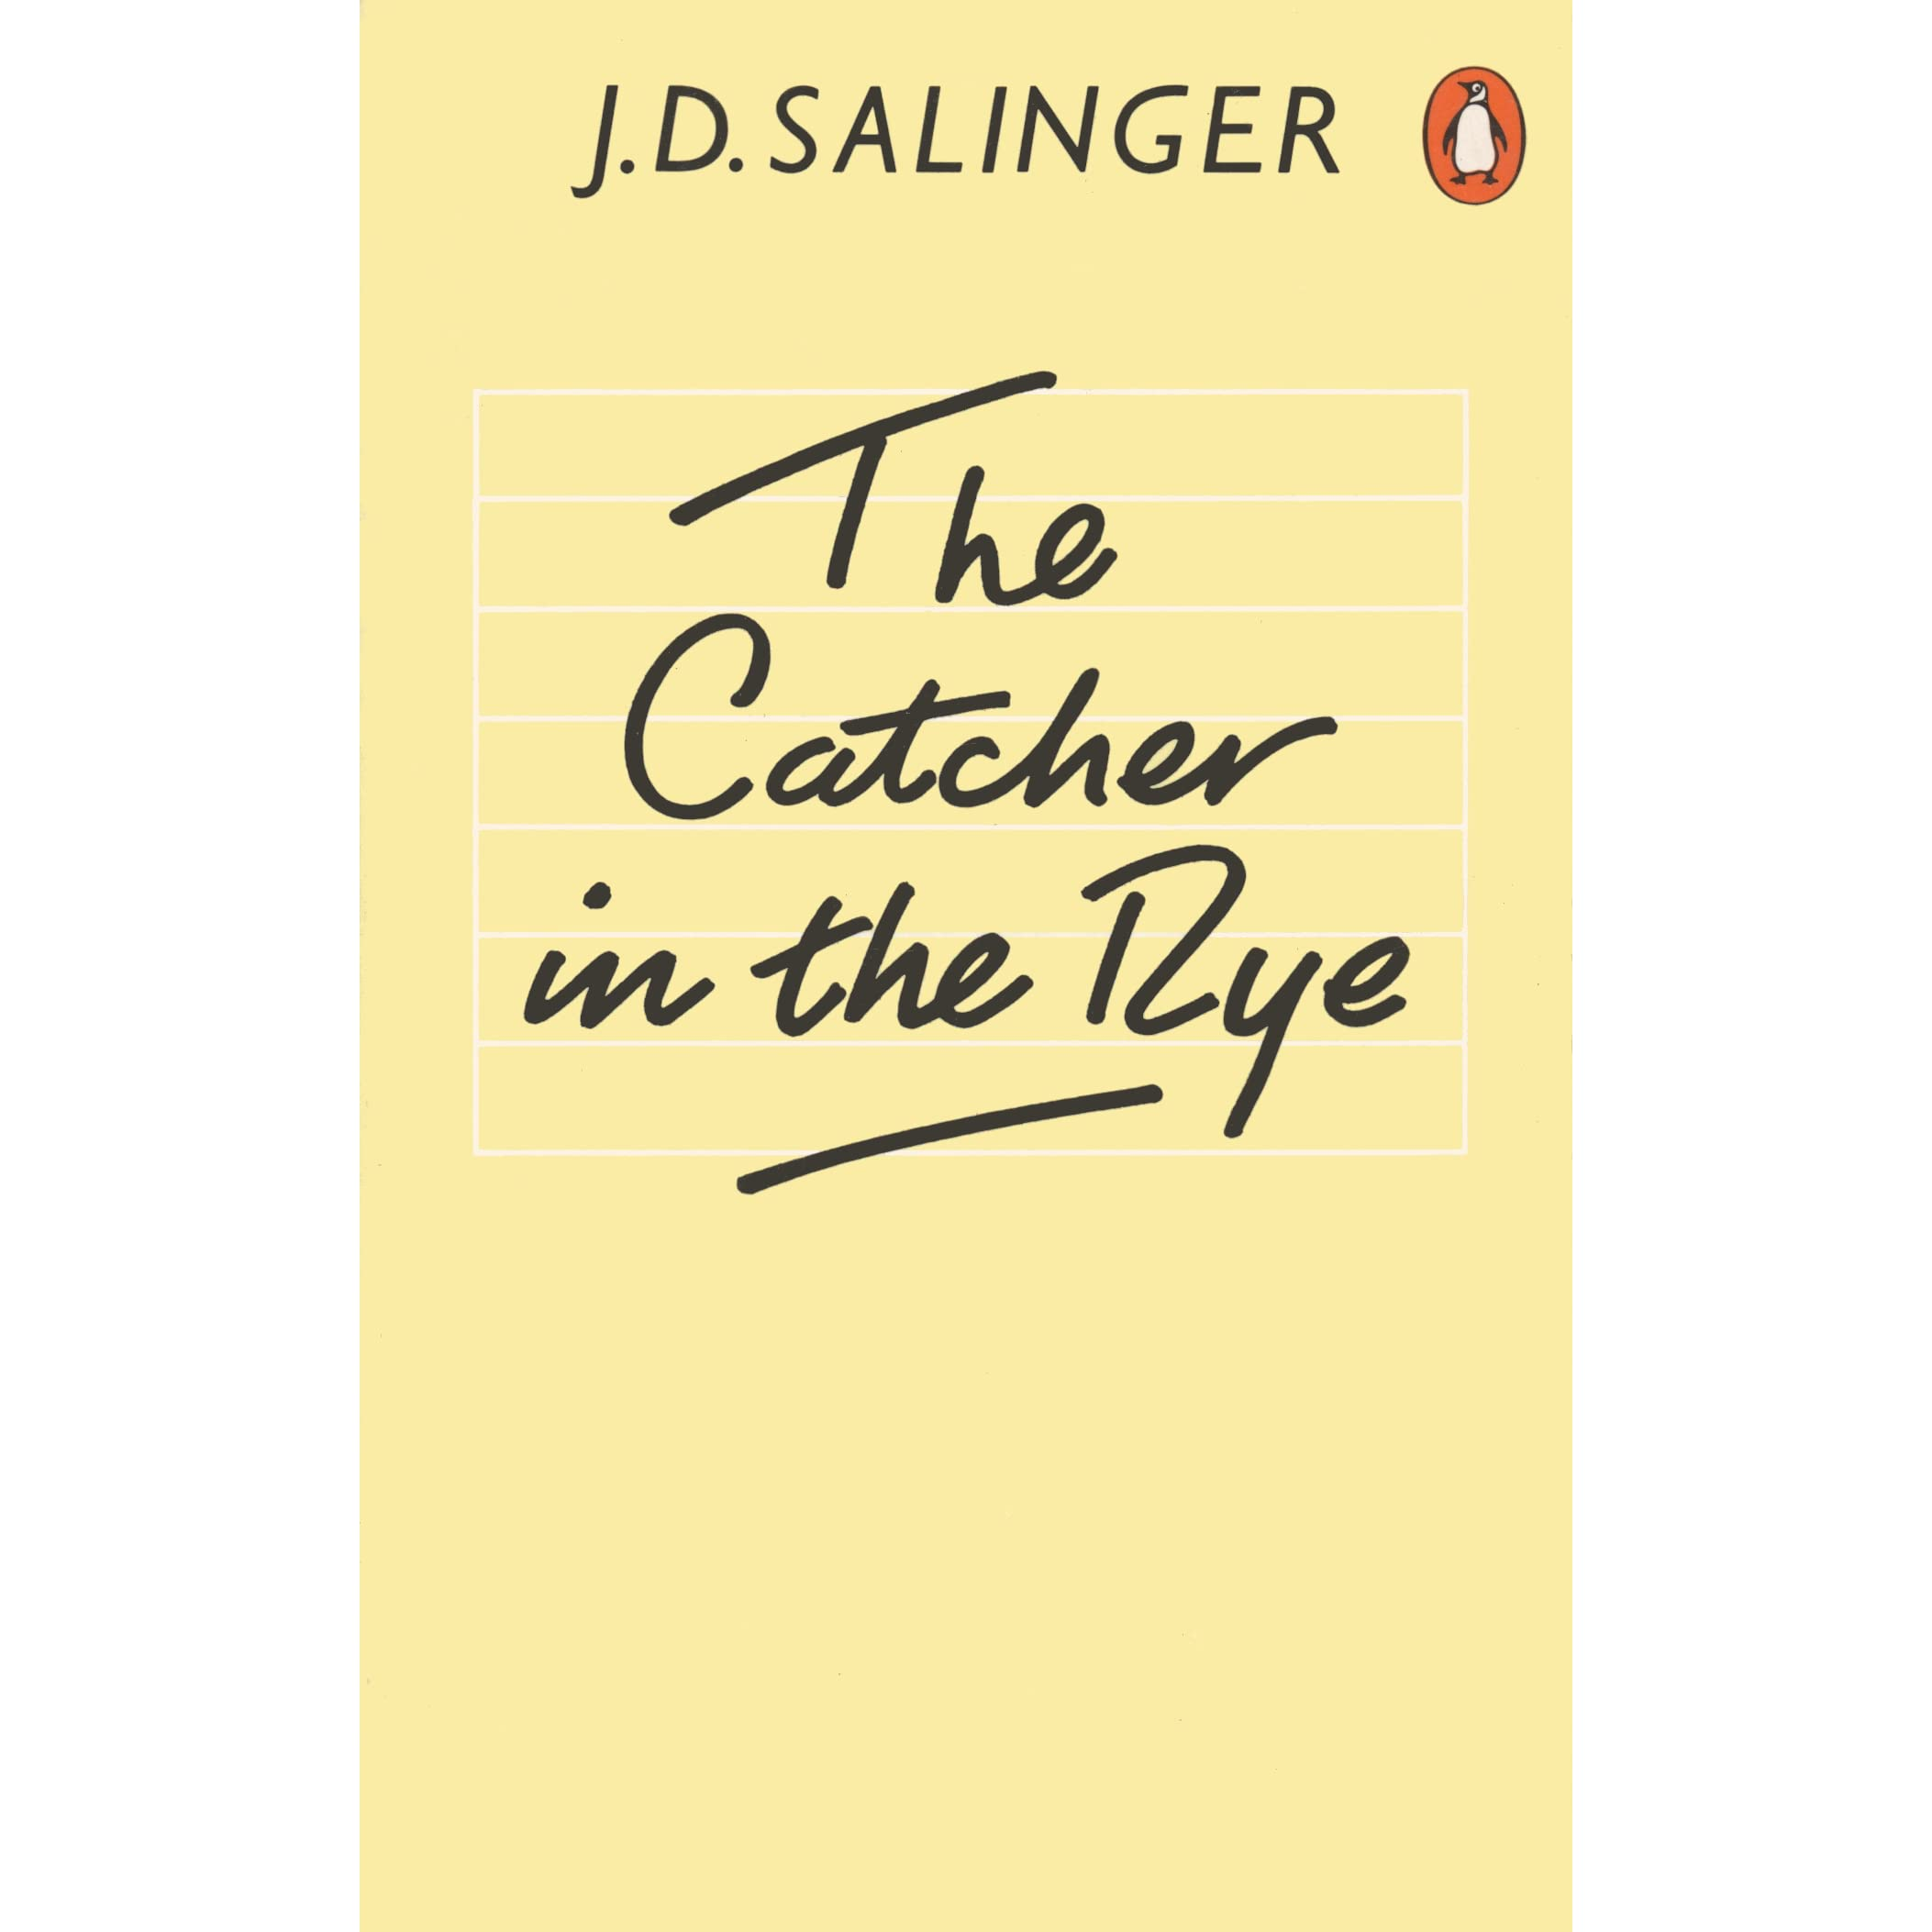 """a psychoanalysis of holden caulfield in the catcher in the rye by j d salinger Review of """"the catcher in the rye"""" by jd of catcher the book is about holden caulfield caufield, jd salinger, psychoanalysis."""